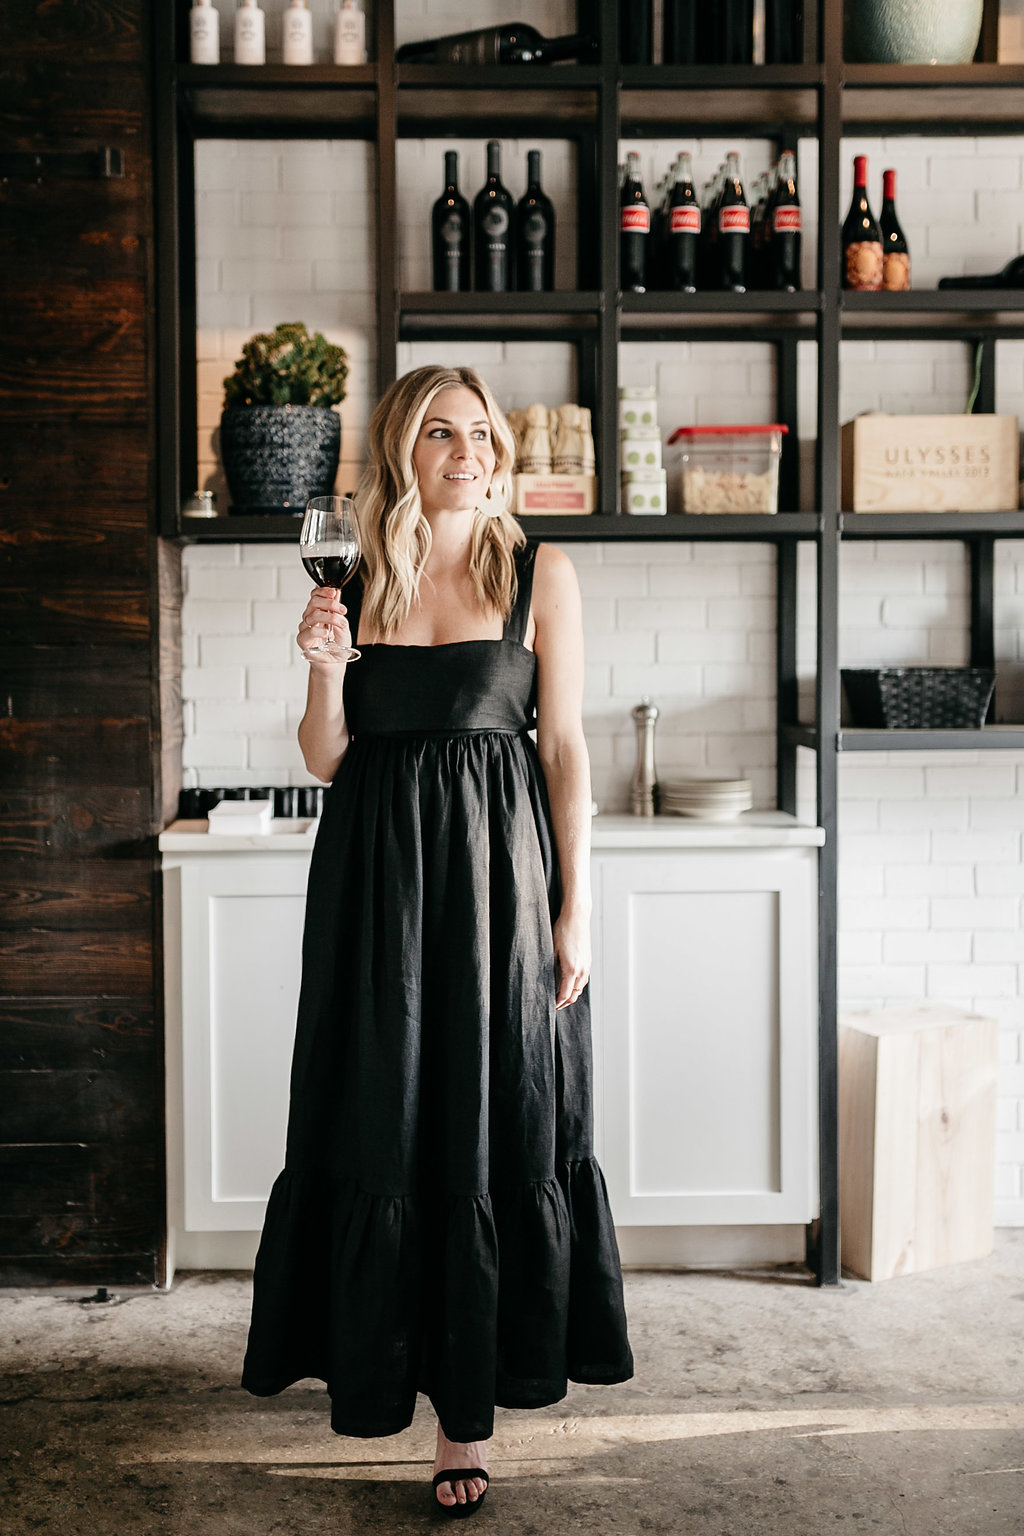 Black dress plus a list of the best restaurants in Dallas